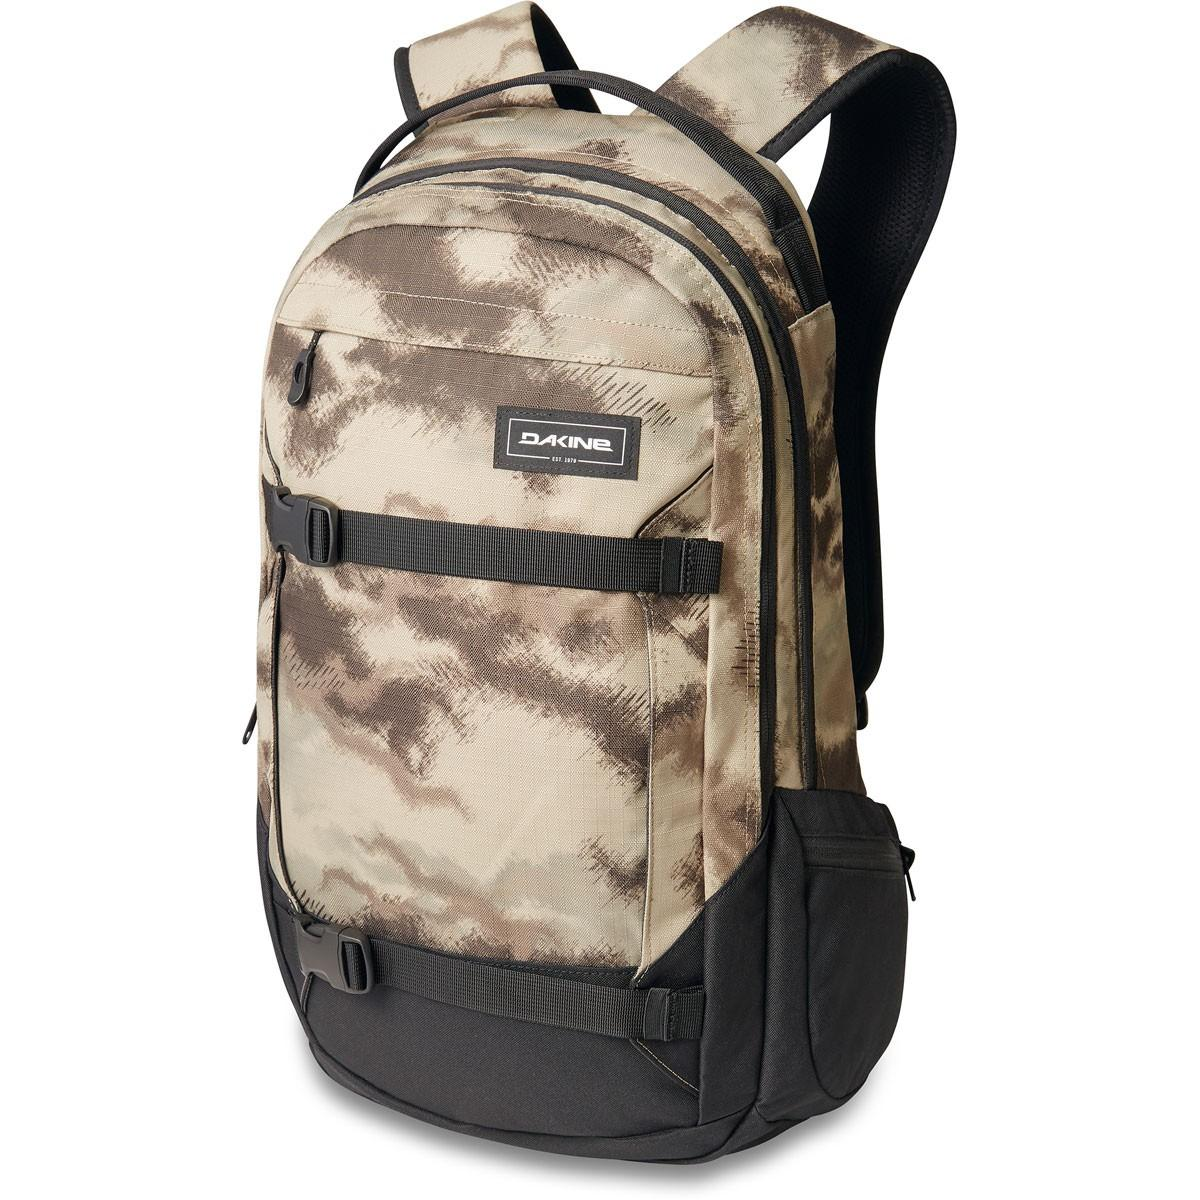 Dakine Mission Backpack in Ashcroft